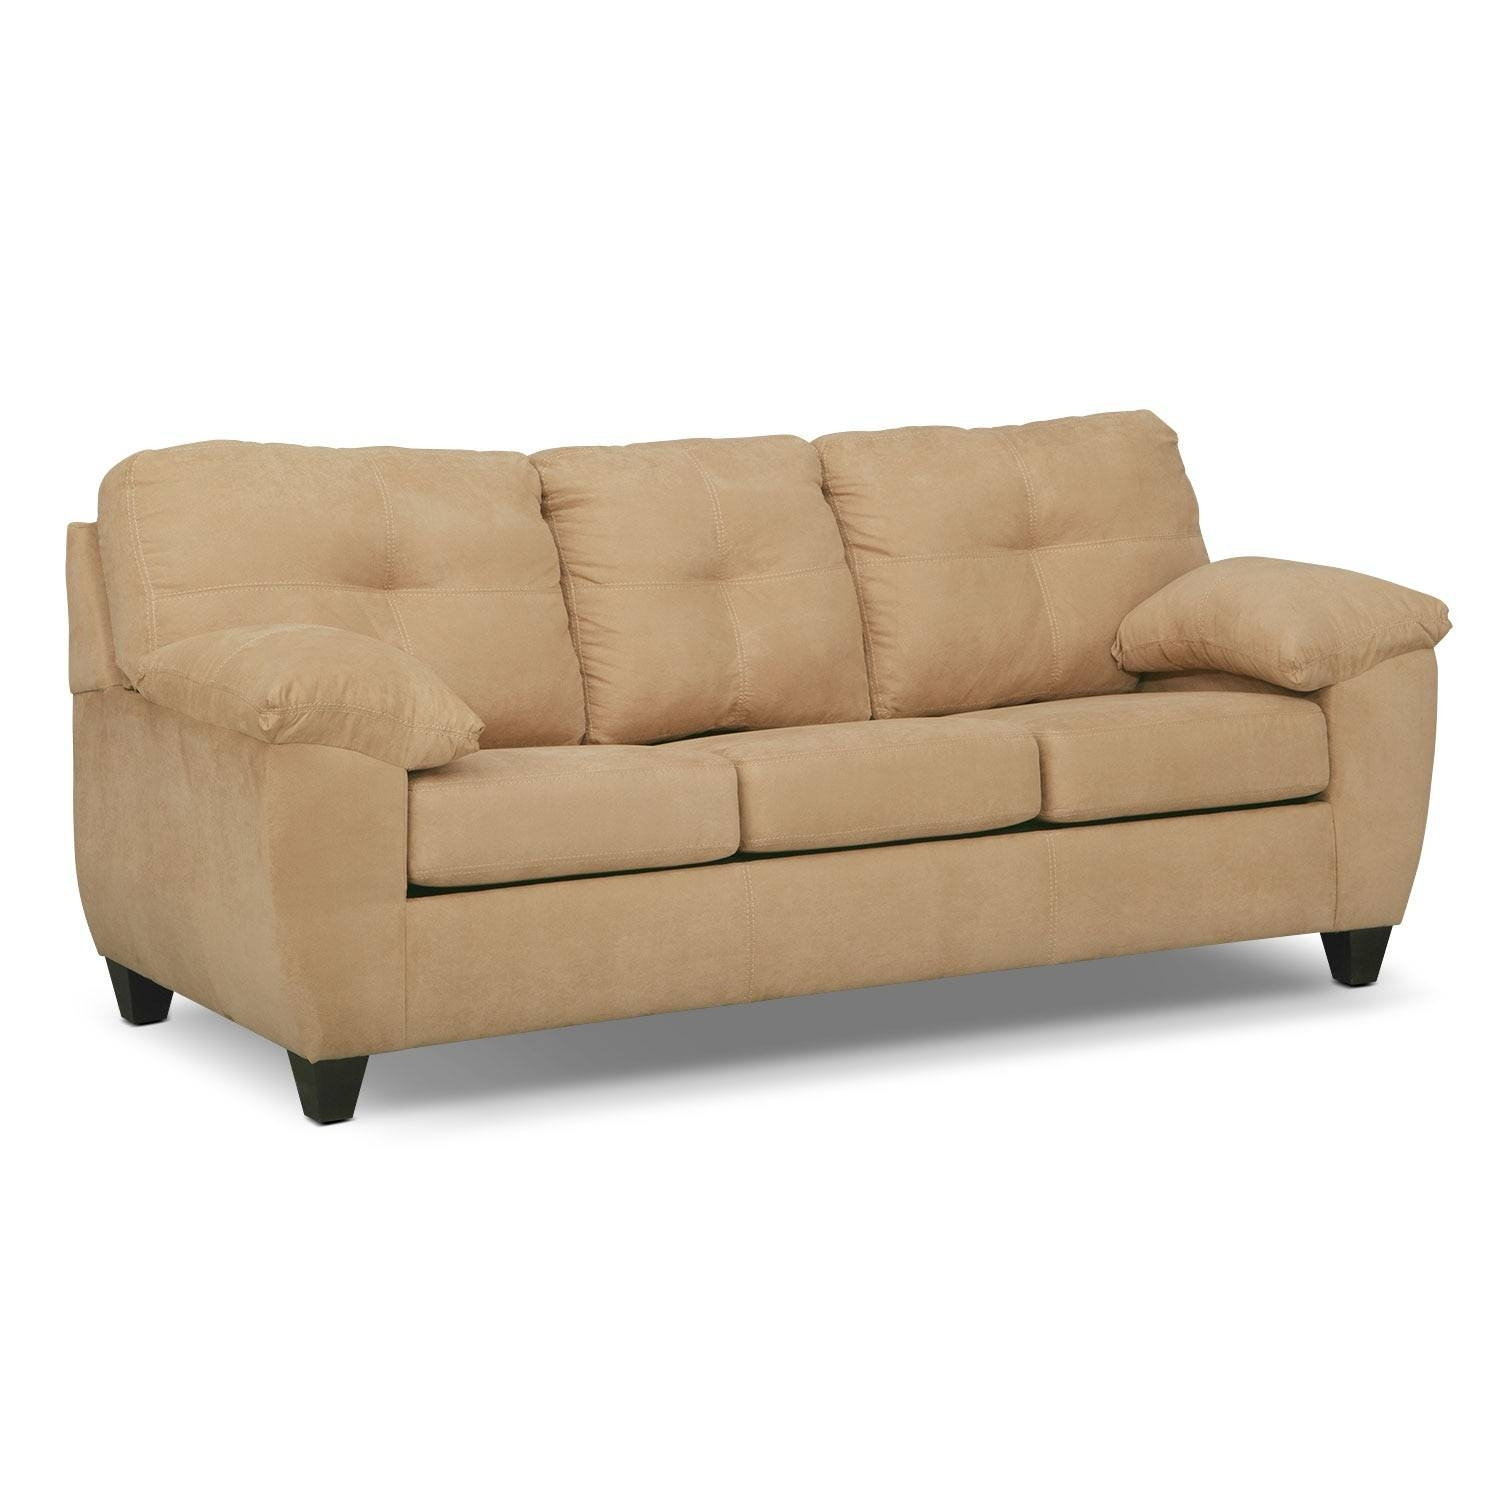 Sleeper Sofas | Value City Furniture | Value City Furniture within Sofa Bed Sleepers (Image 17 of 30)